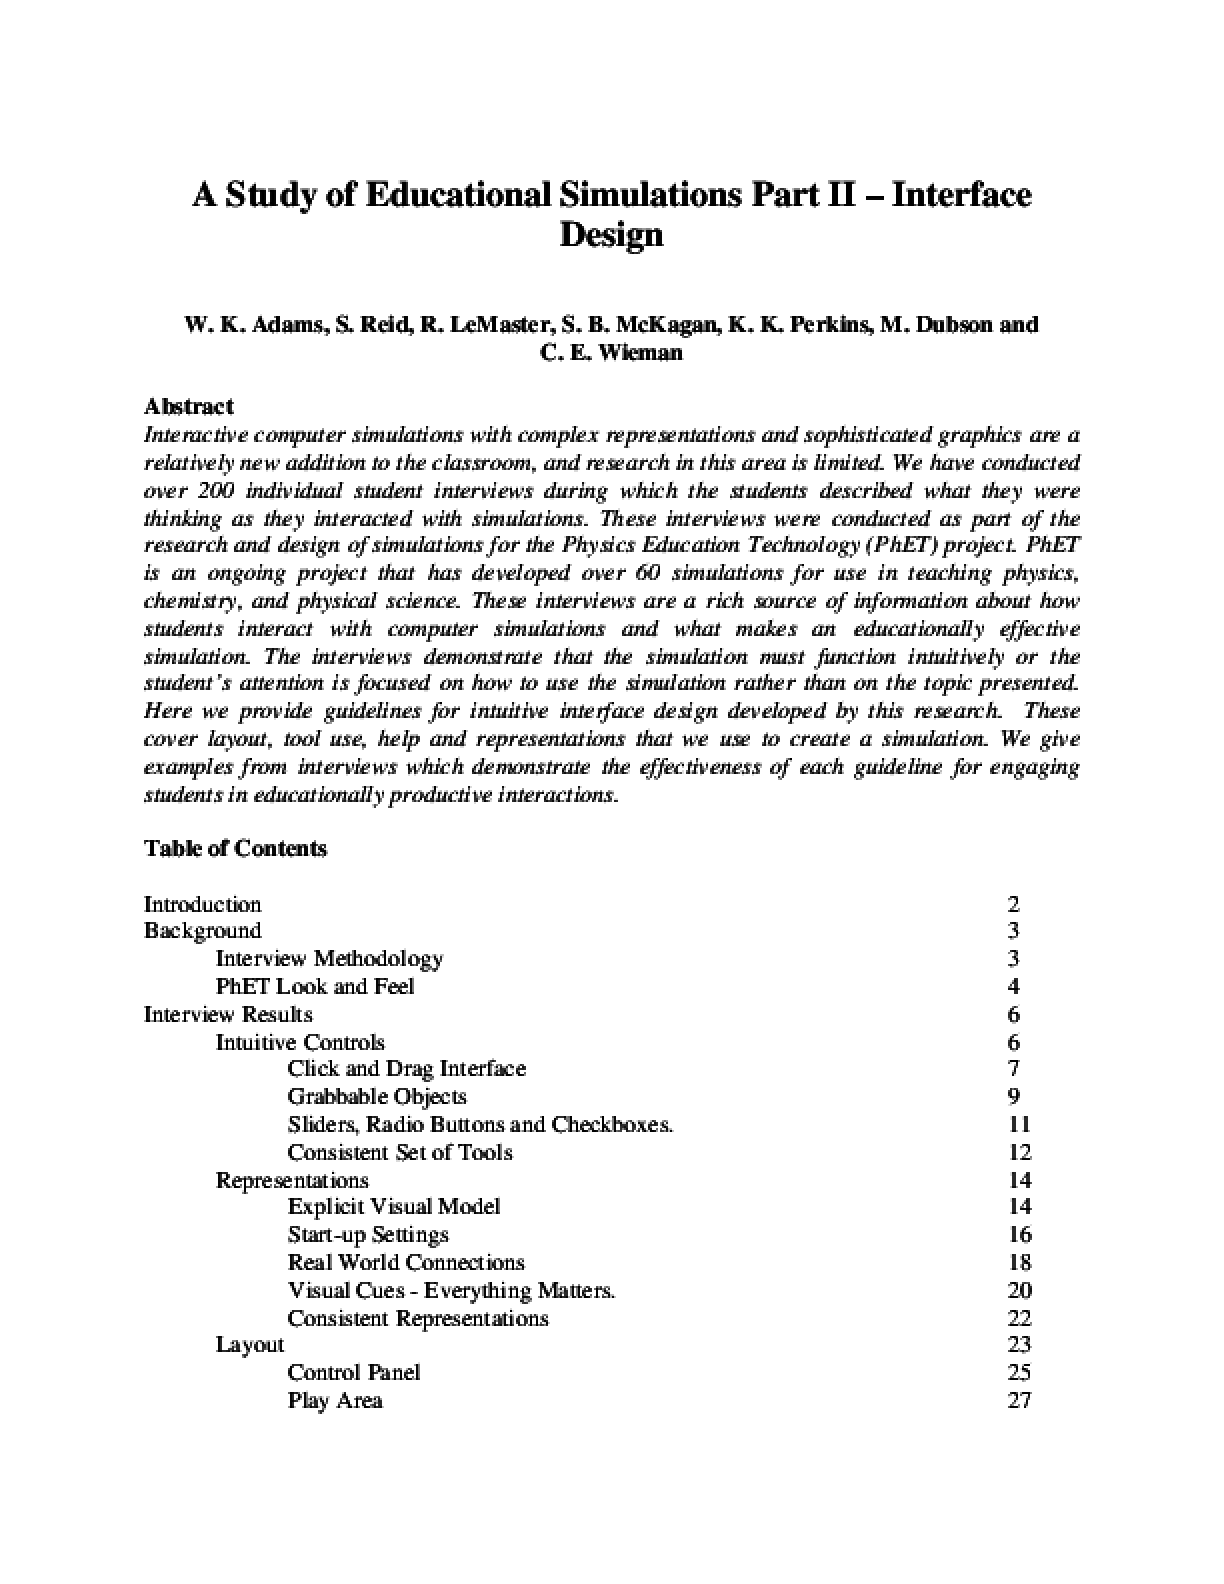 A Study of Educational Simulations Part II - Interface Design